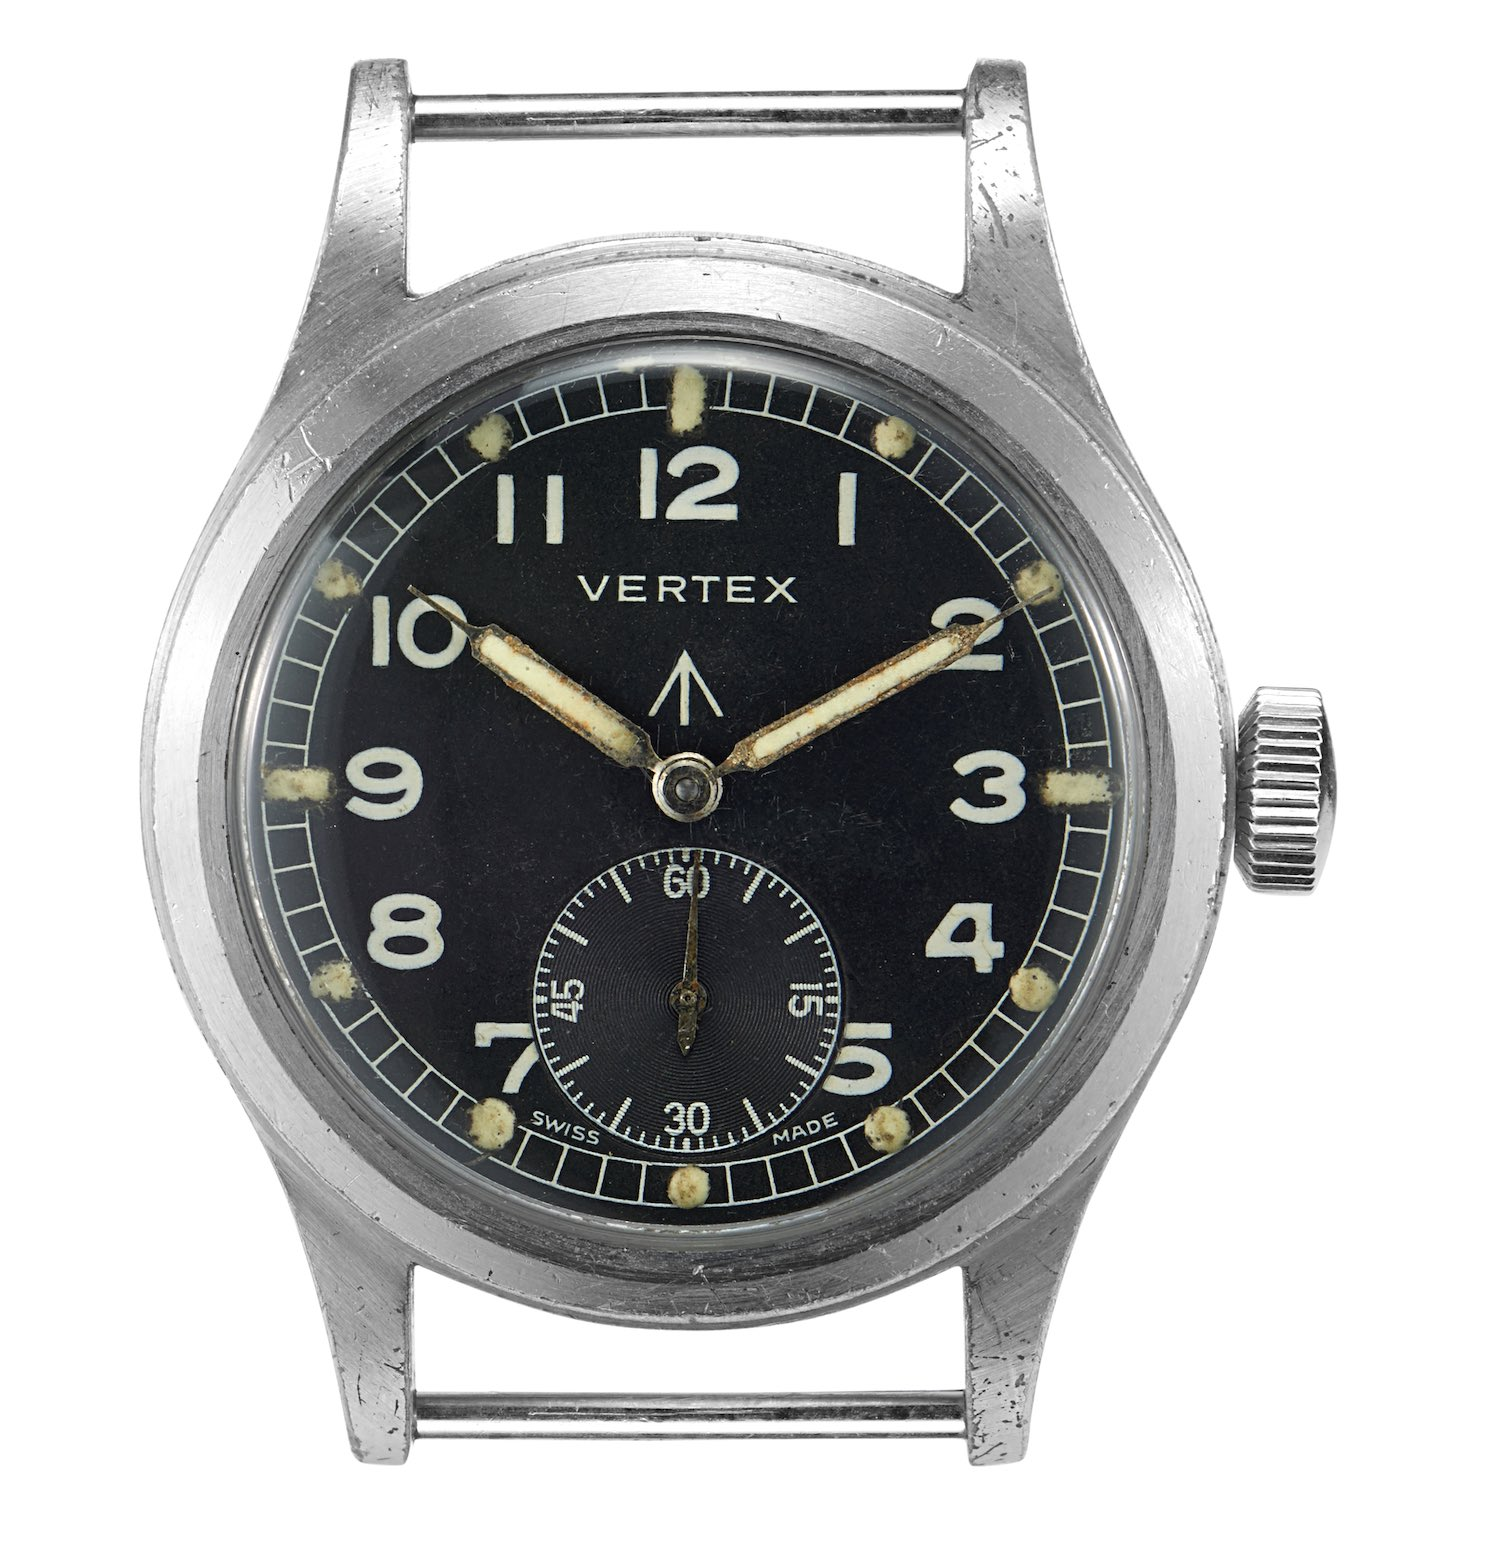 Vertex Dirty Dozen military WWII watch